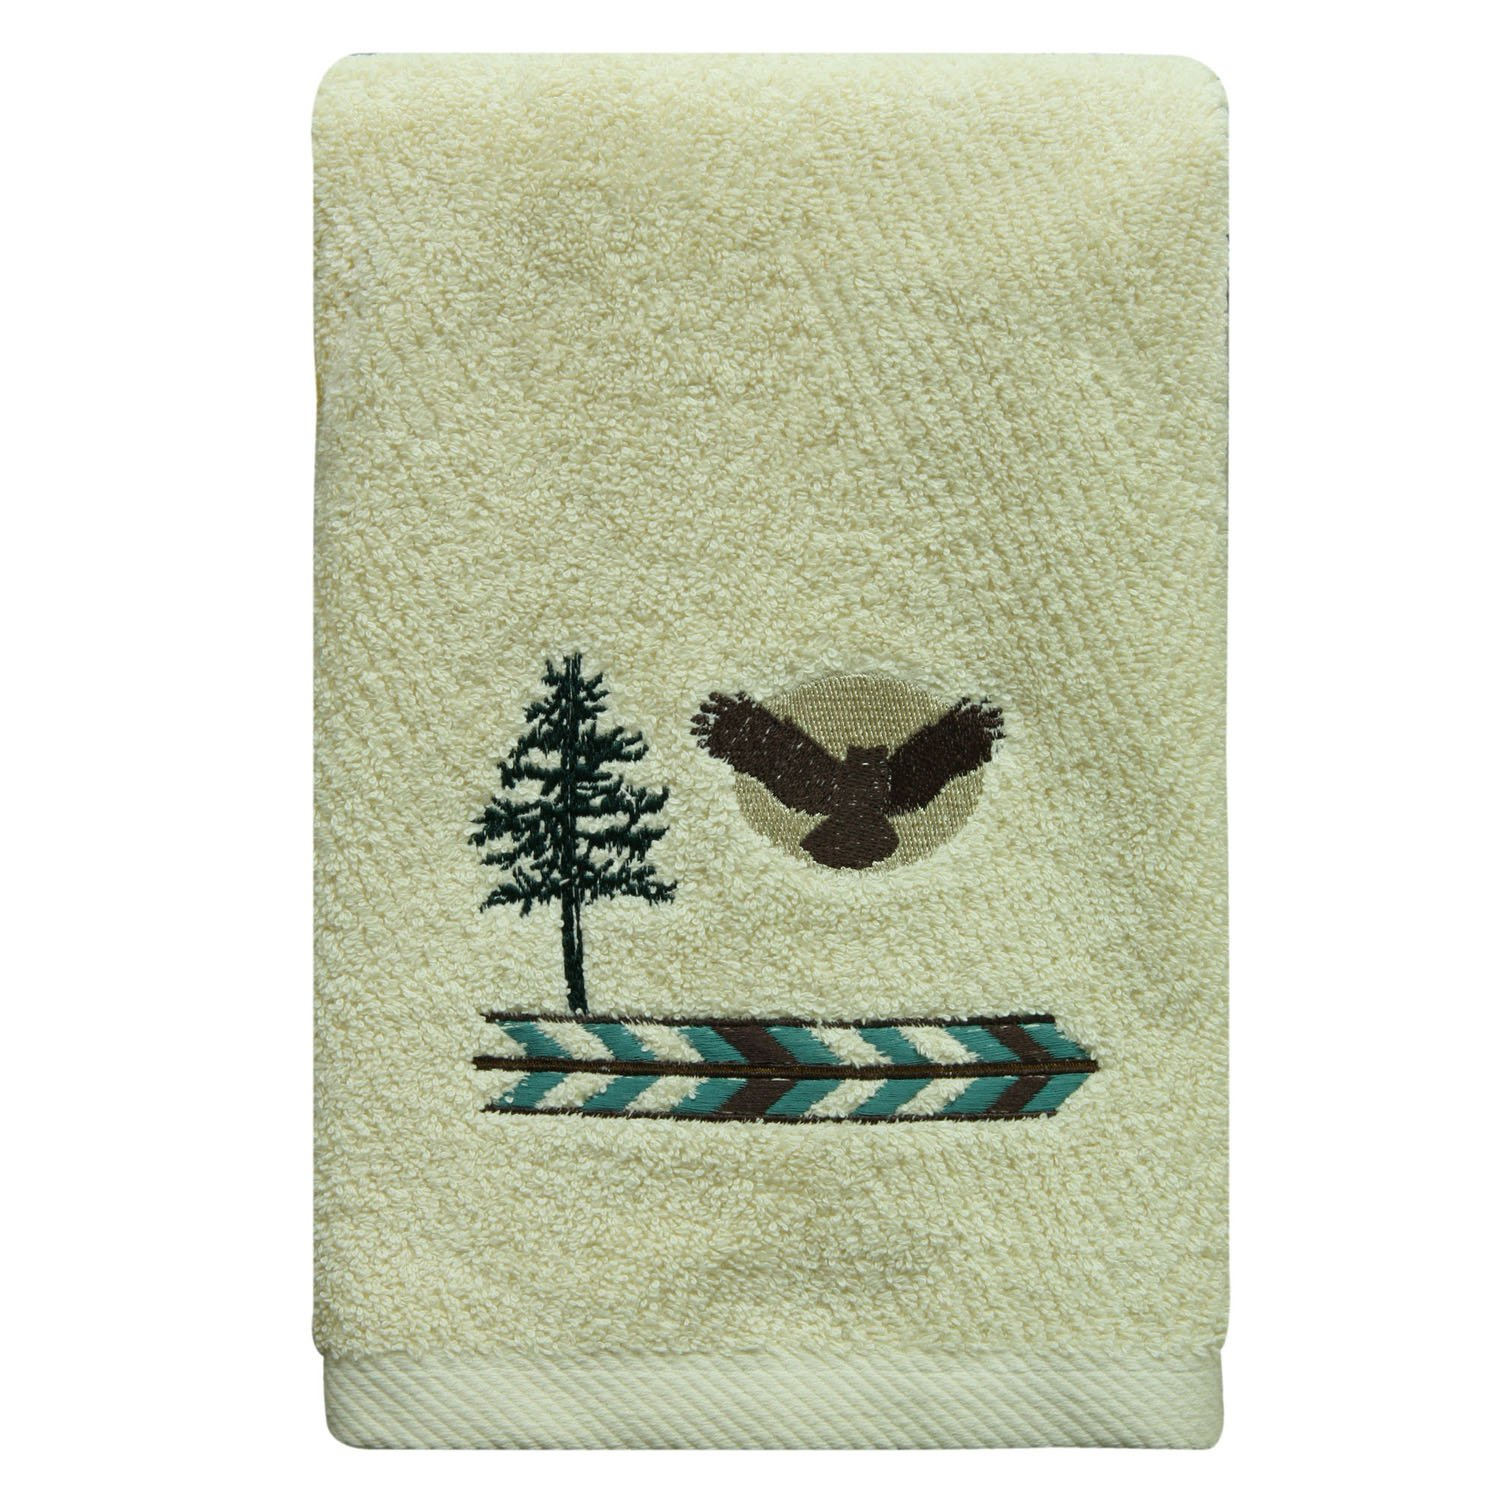 Bacova Guild 48455 Discover The Wild Hand Towel